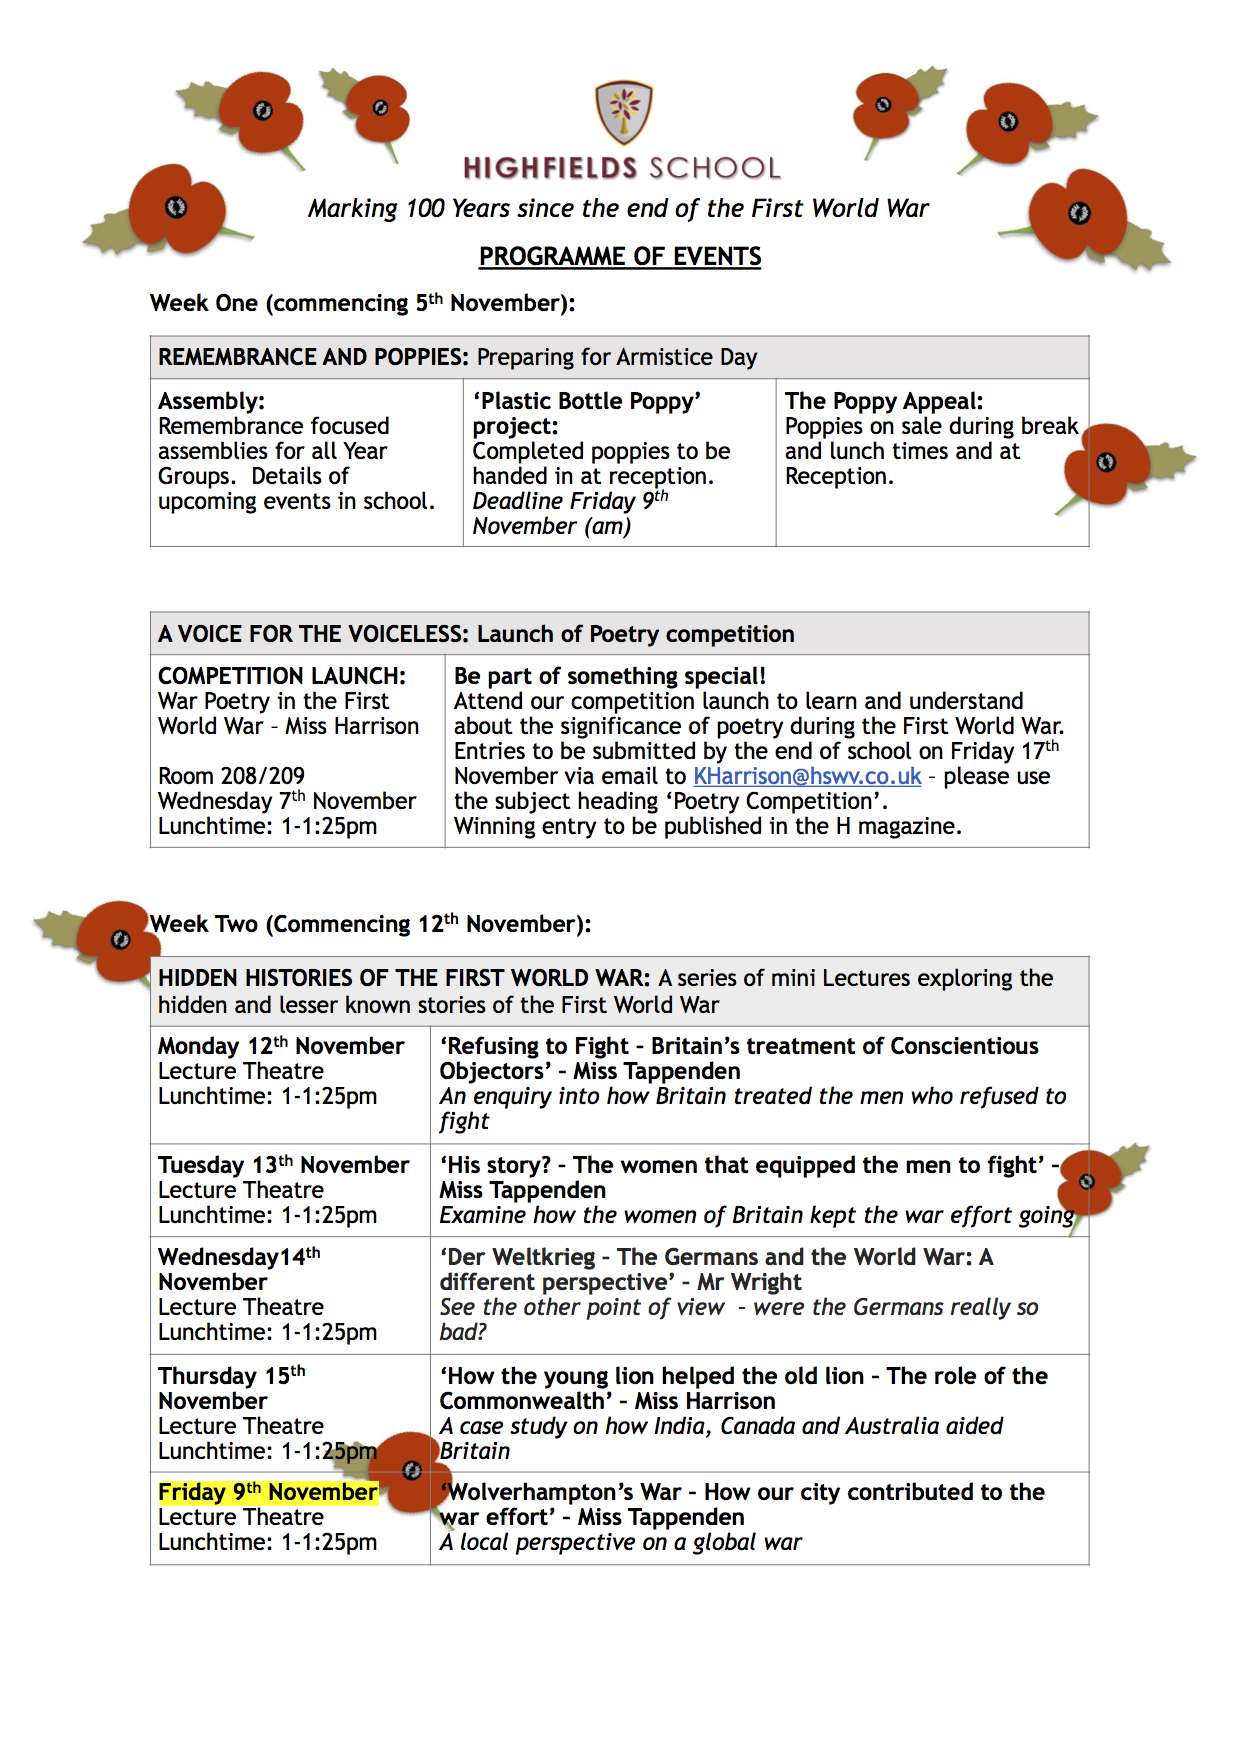 Remembrance 2018 - Student copy programme of events 4.jpg